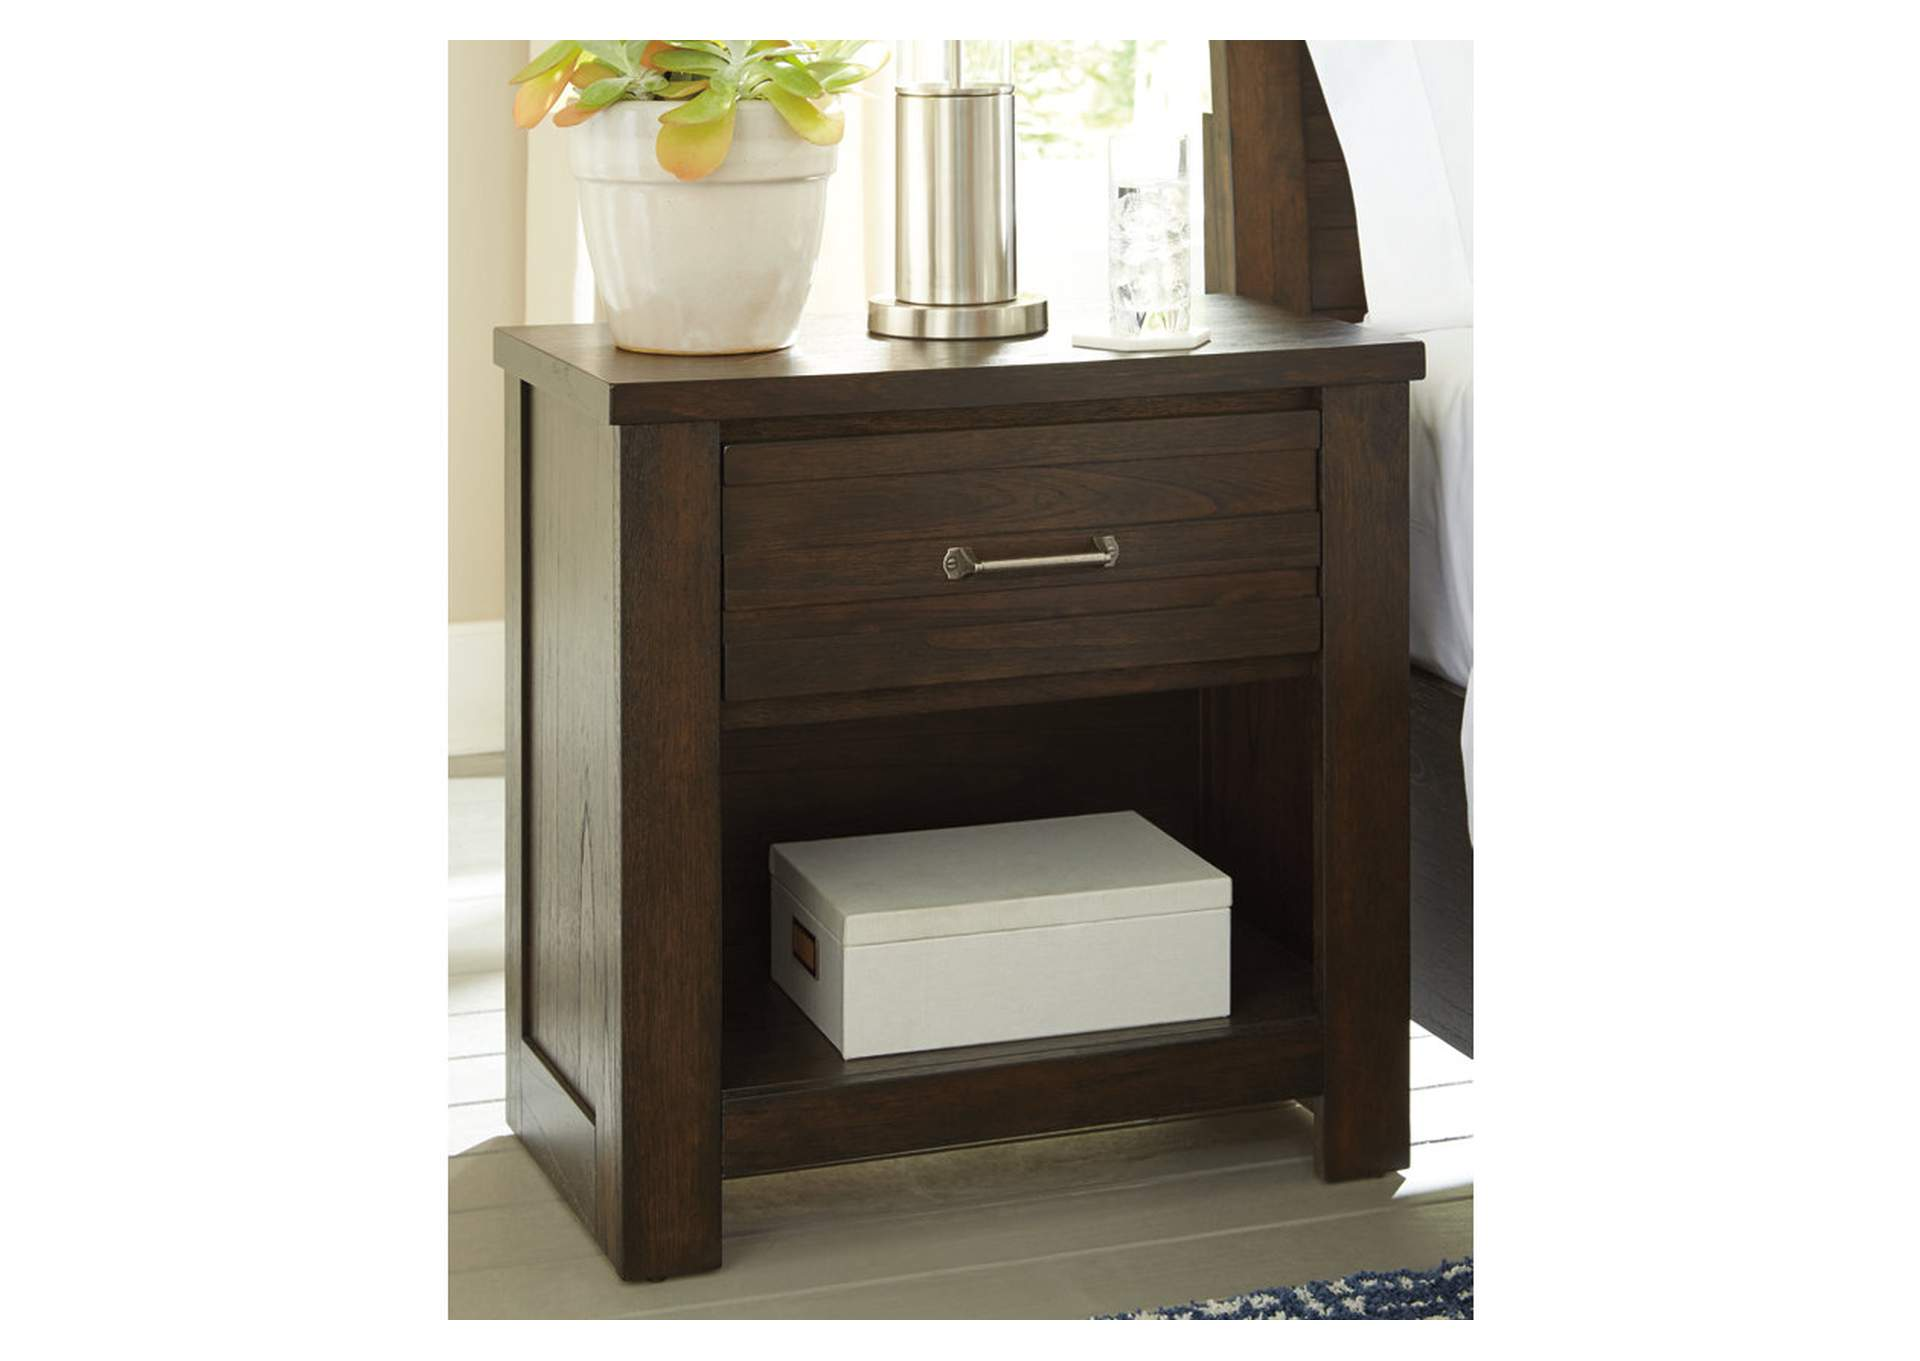 Darbry Brown 1 Drawer Nightstand,Signature Design By Ashley